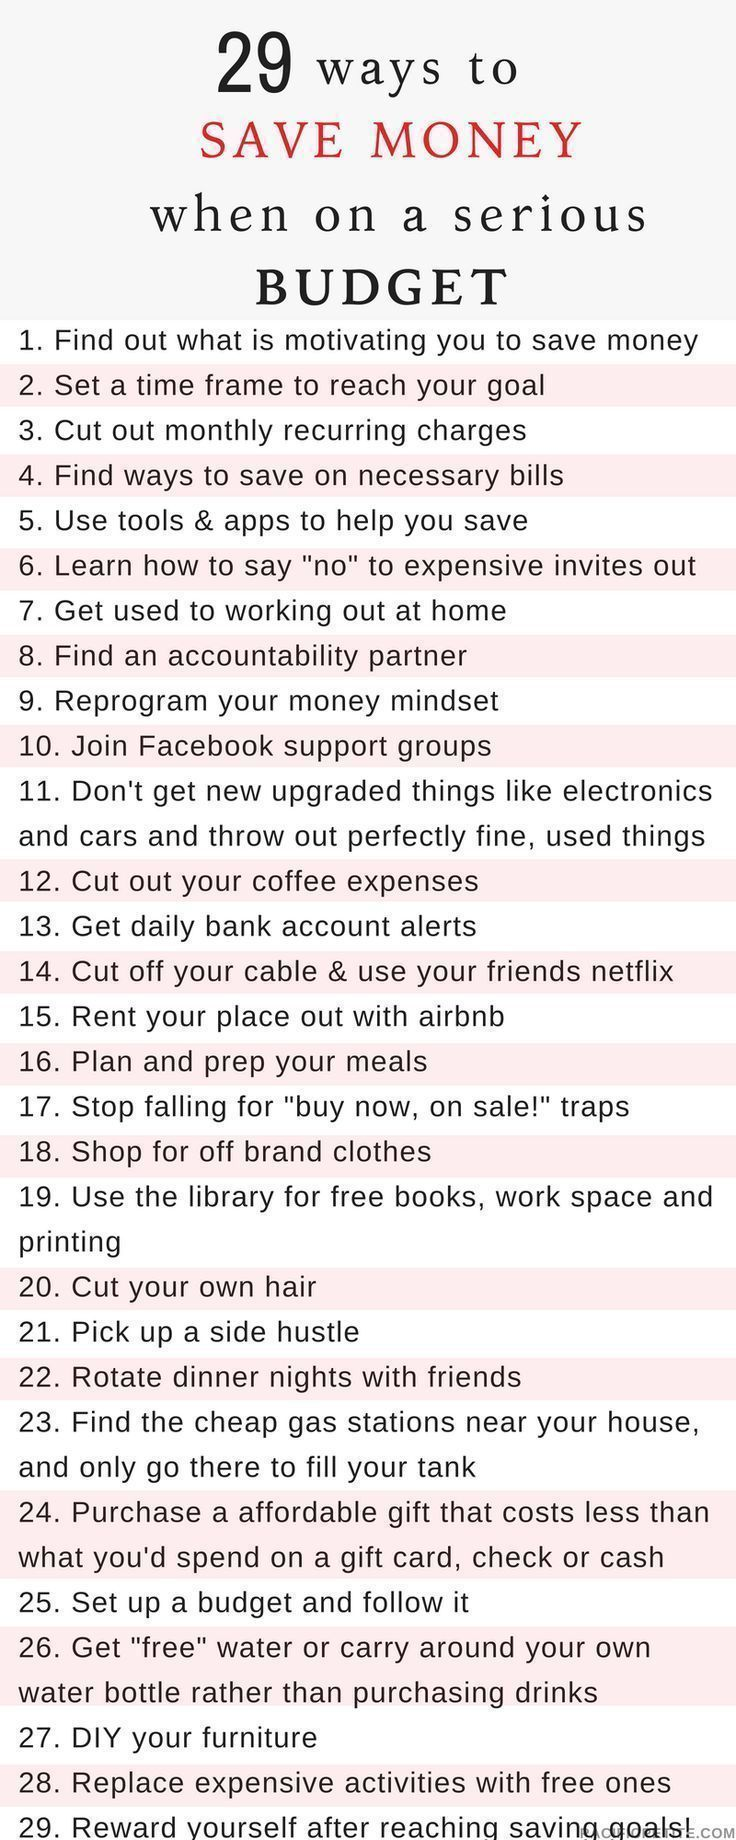 29 ways to save money when you're on a serious budget